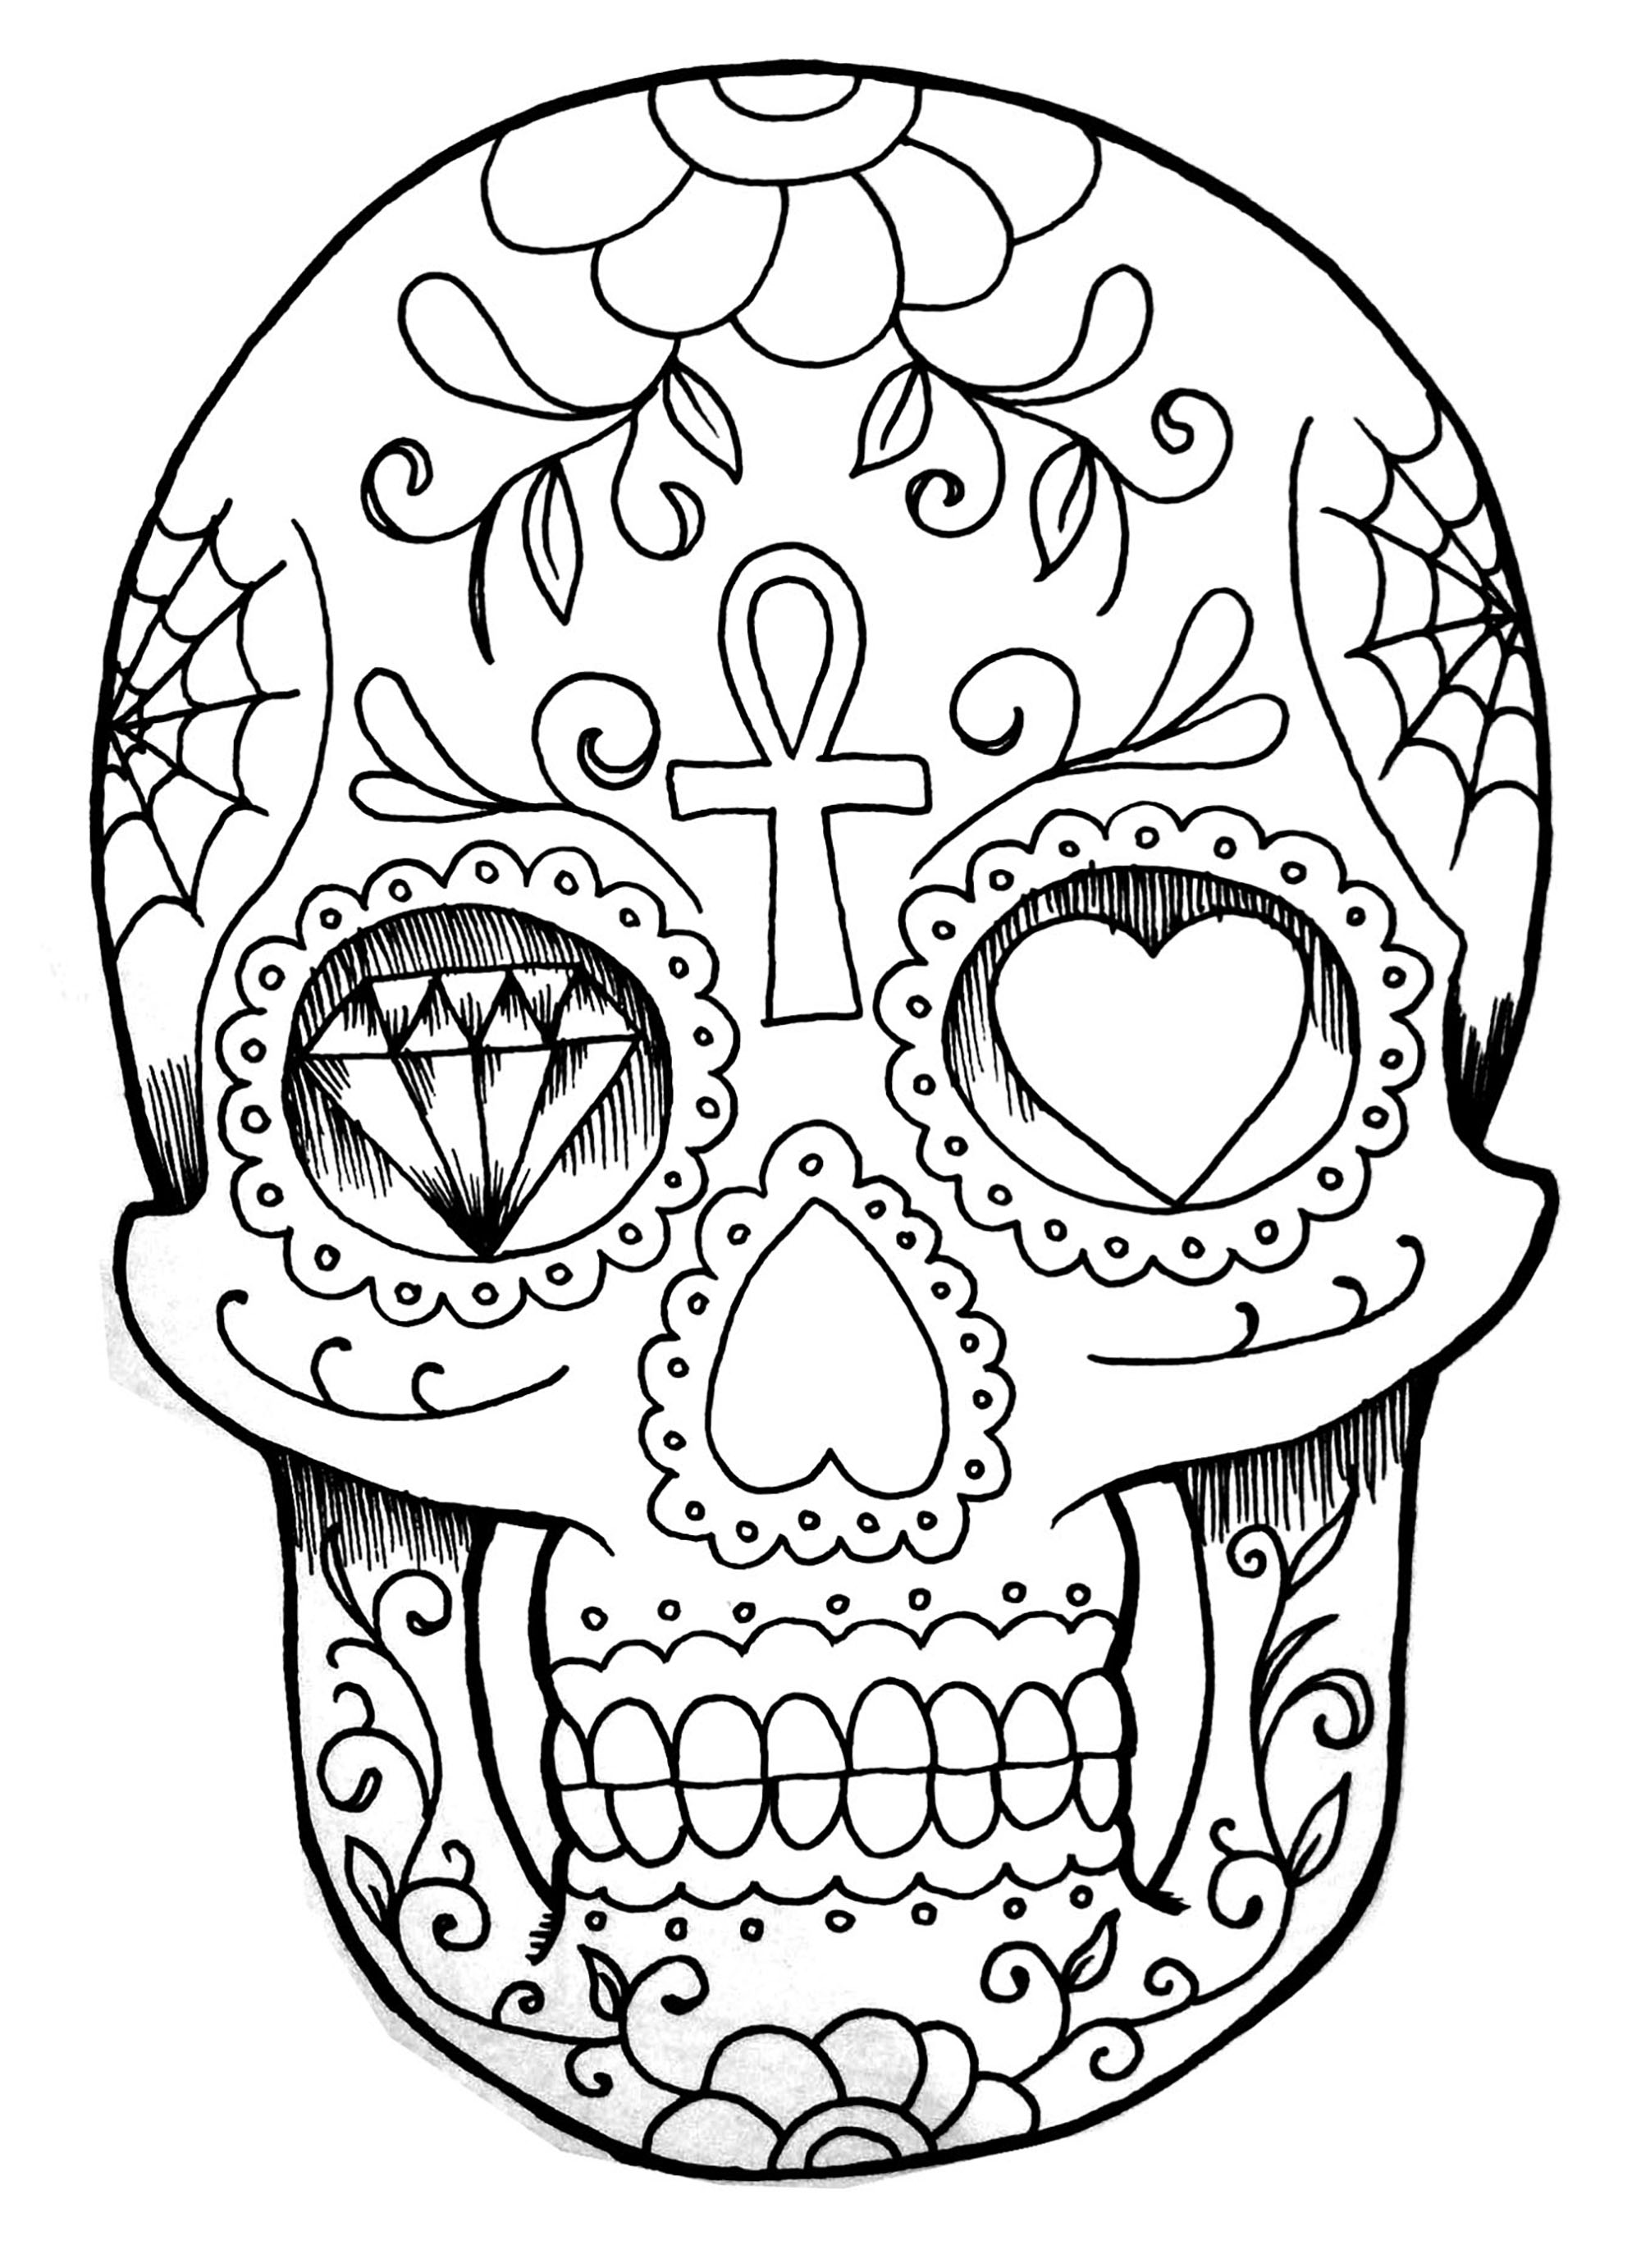 skull tattoo coloring pages sugar skulls wip by jessicacanvas on deviantart skull coloring pages tattoo